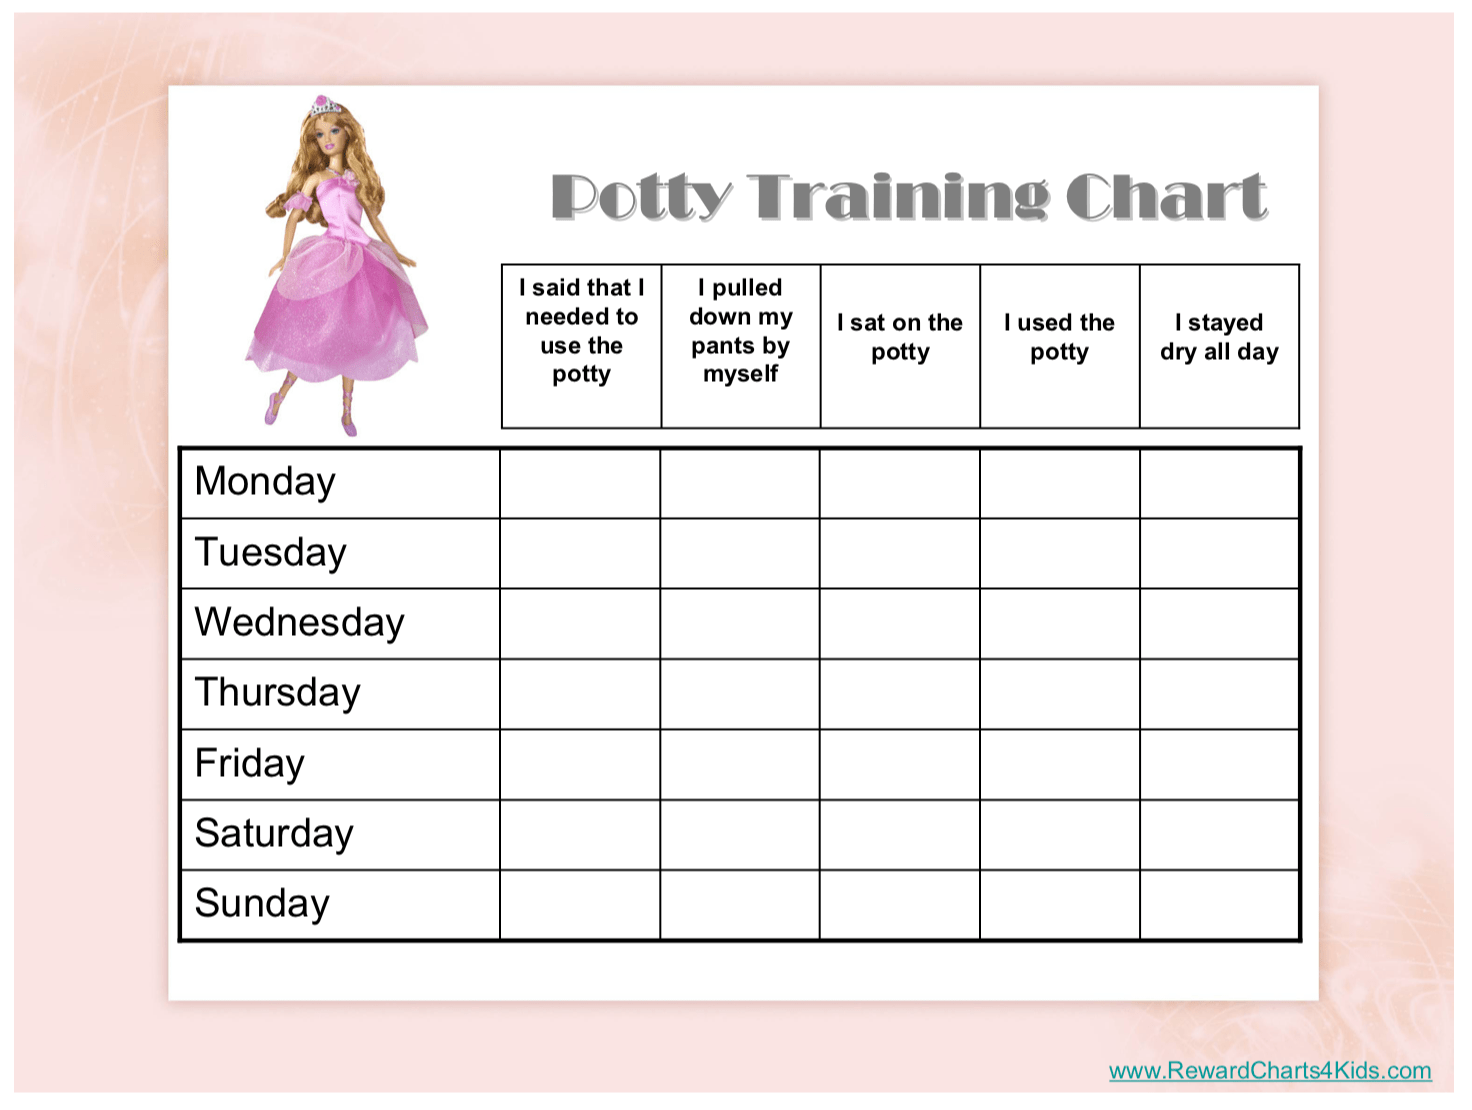 photograph regarding Free Printable Potty Chart referred to as Totally free Printable Potty Doing exercises Charts - Geared up in the direction of Potty!